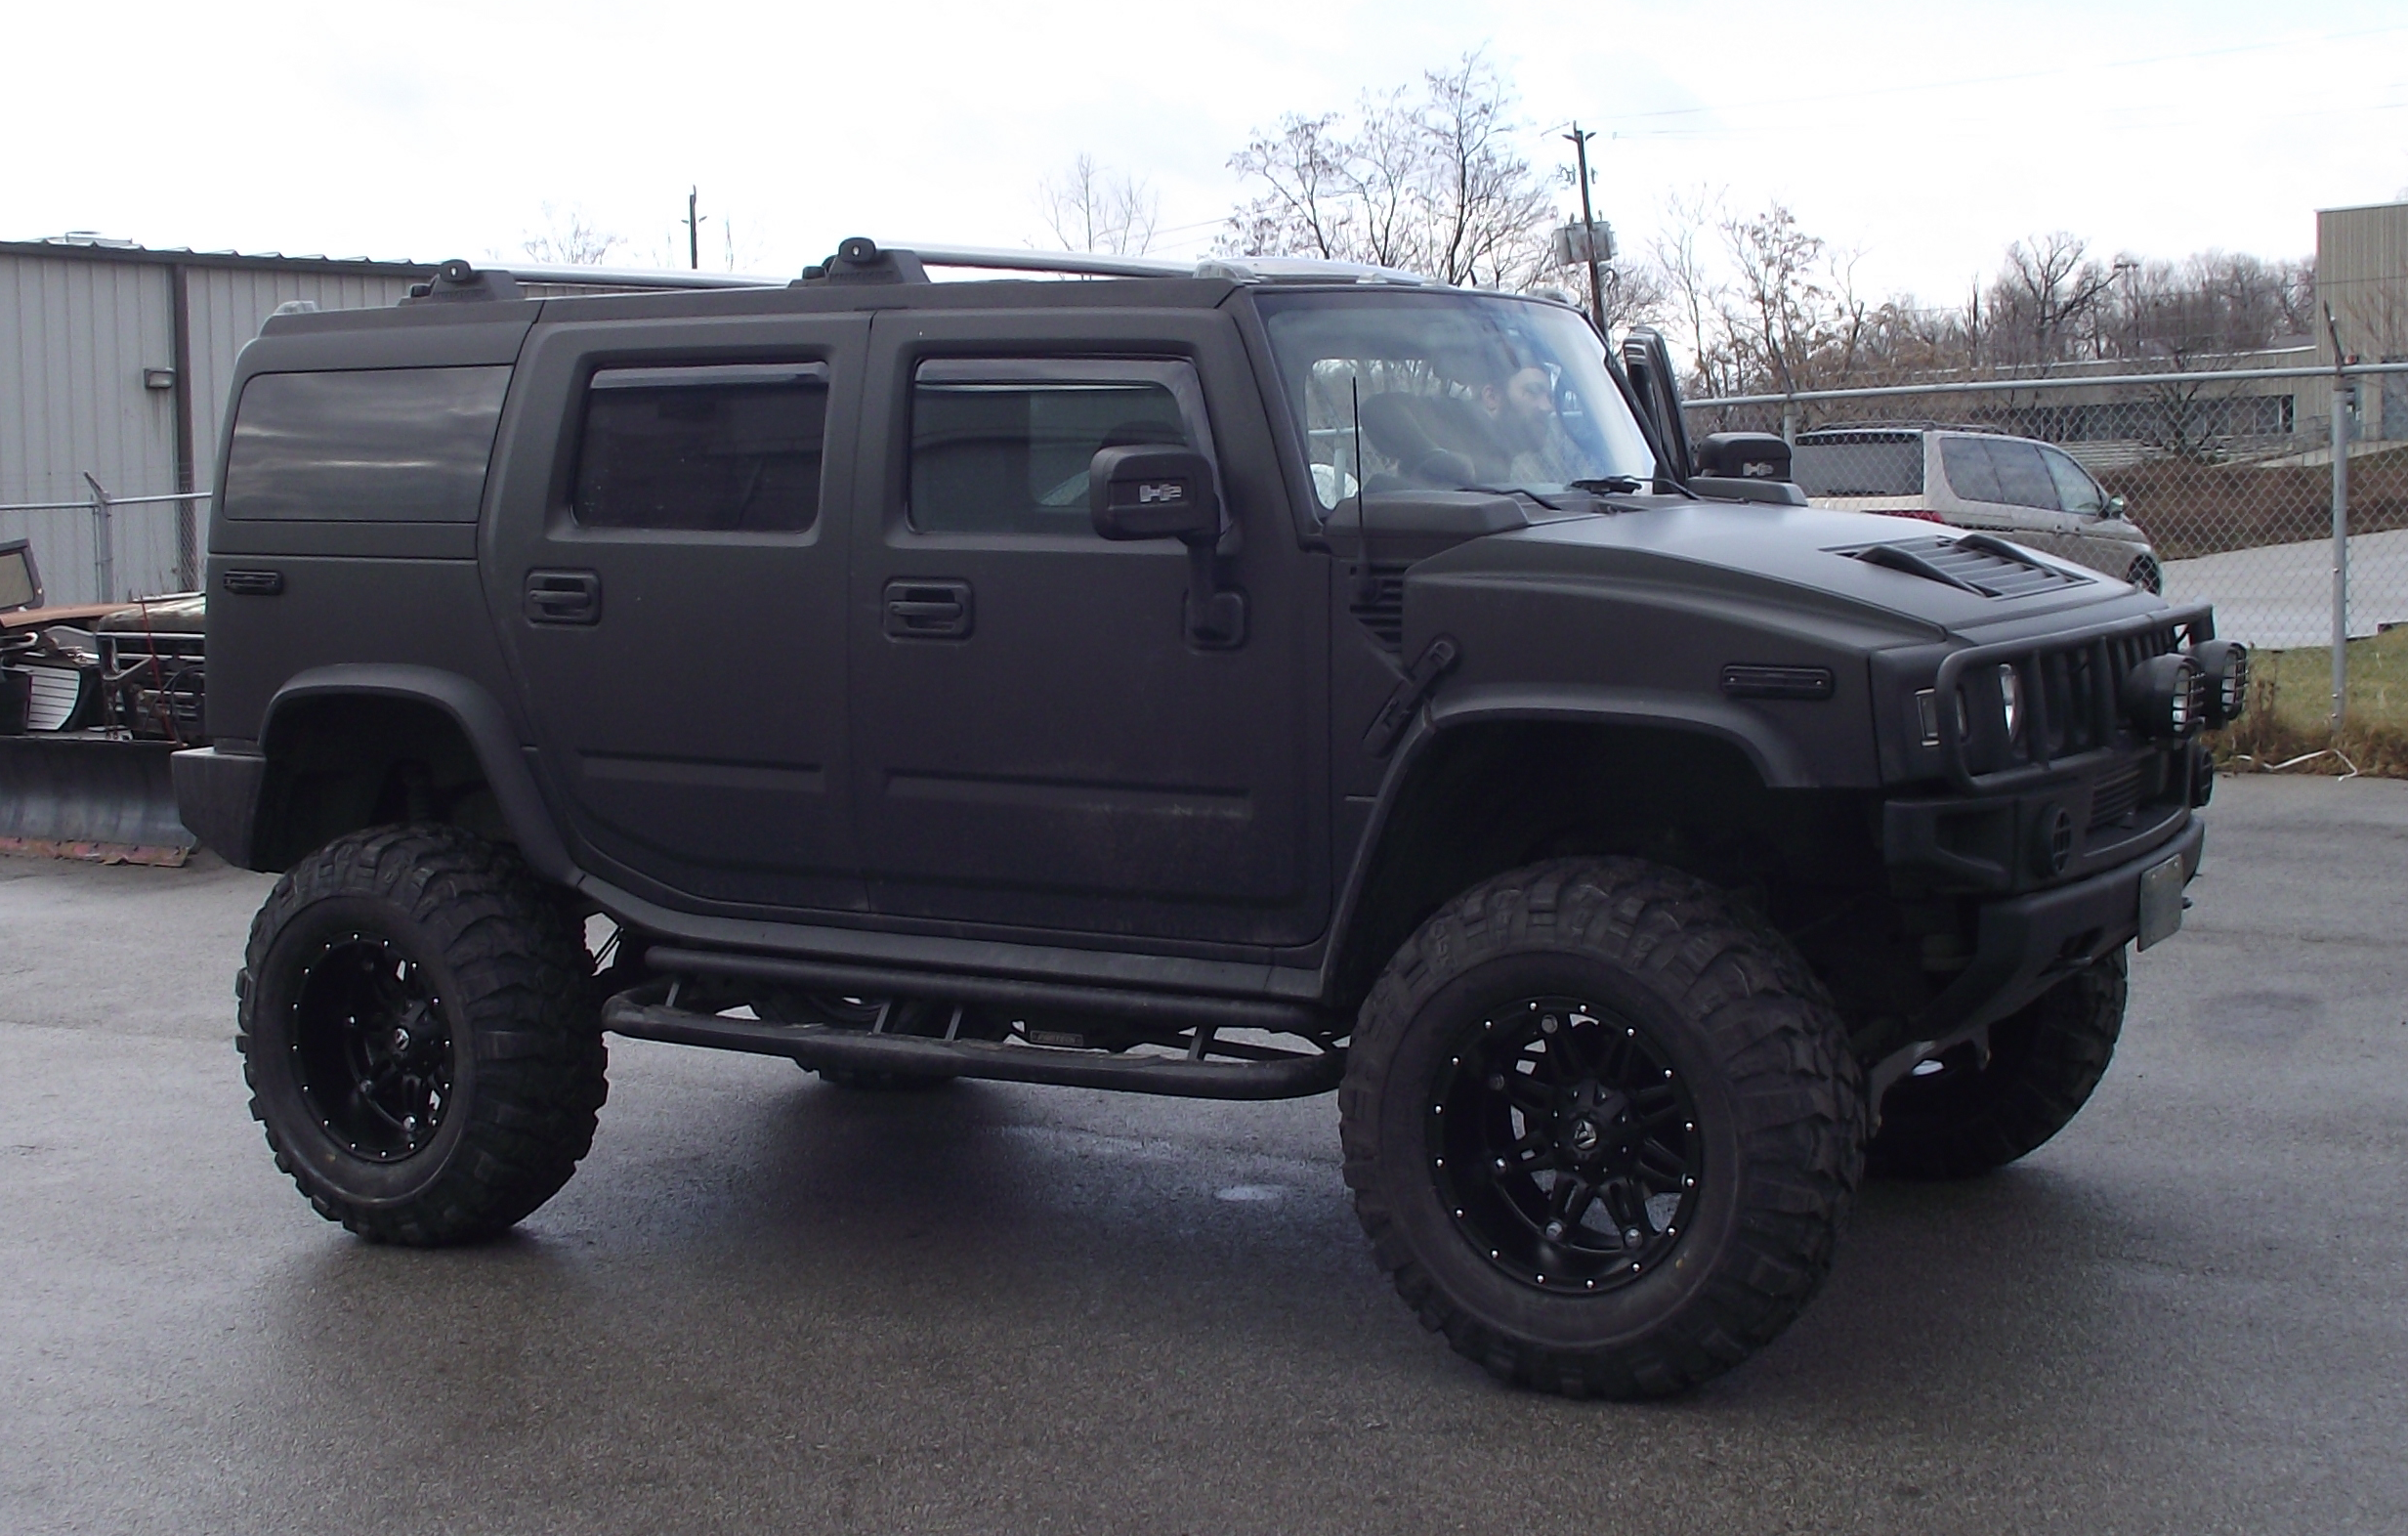 febde46c10bd116fe15ab086710cbf81 Cool Review About 2009 Hummer H2 Sut with Cool Pictures Cars Review